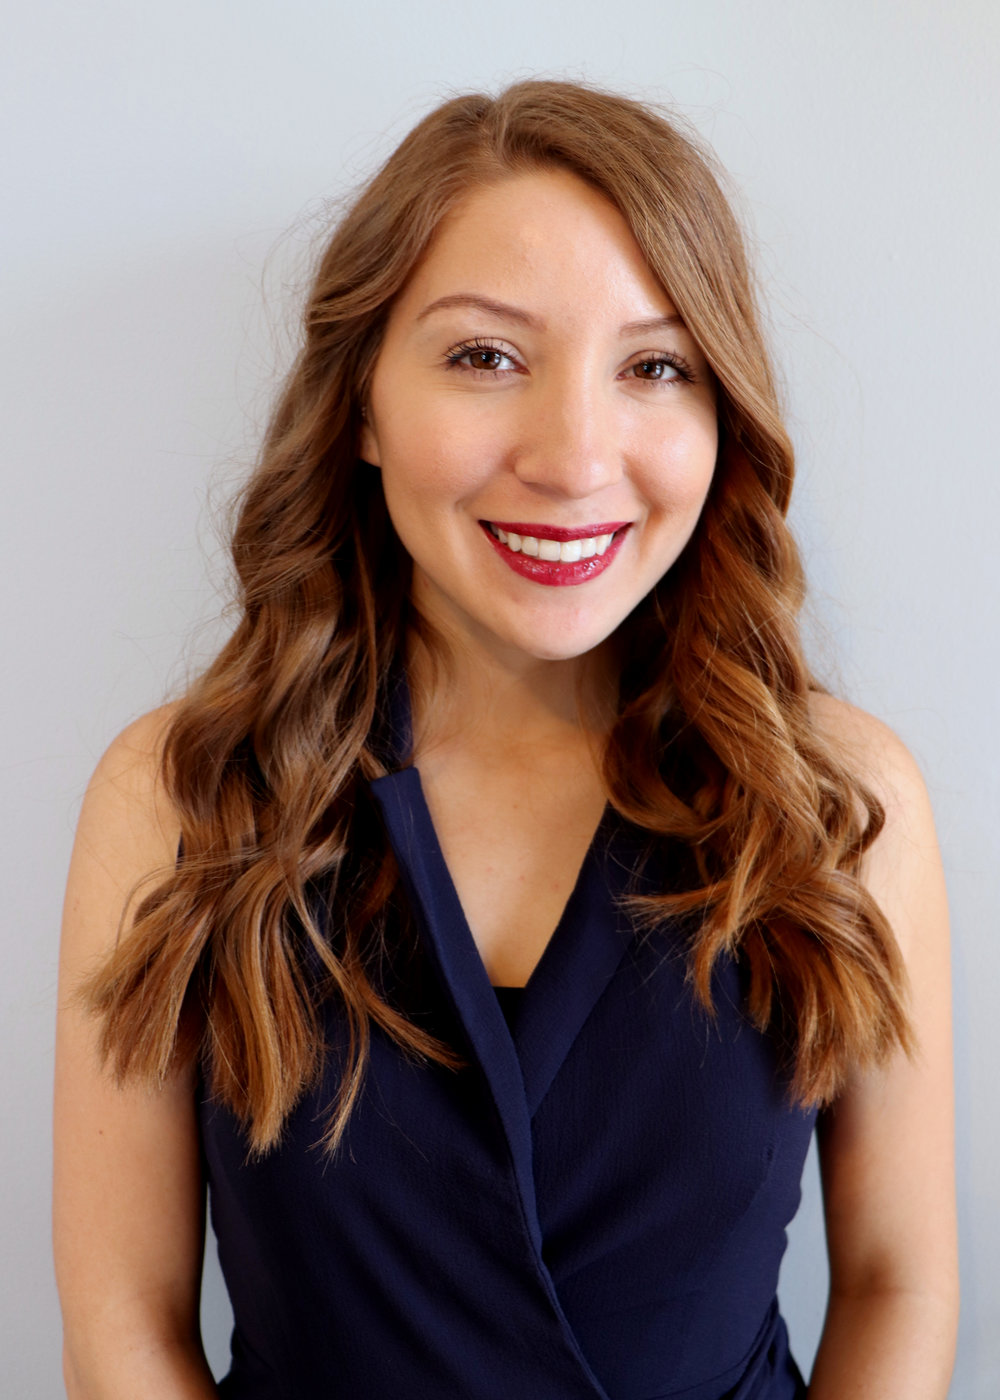 Meet Stephanie - I specialize in self-esteem/confidence, stress and finding balance